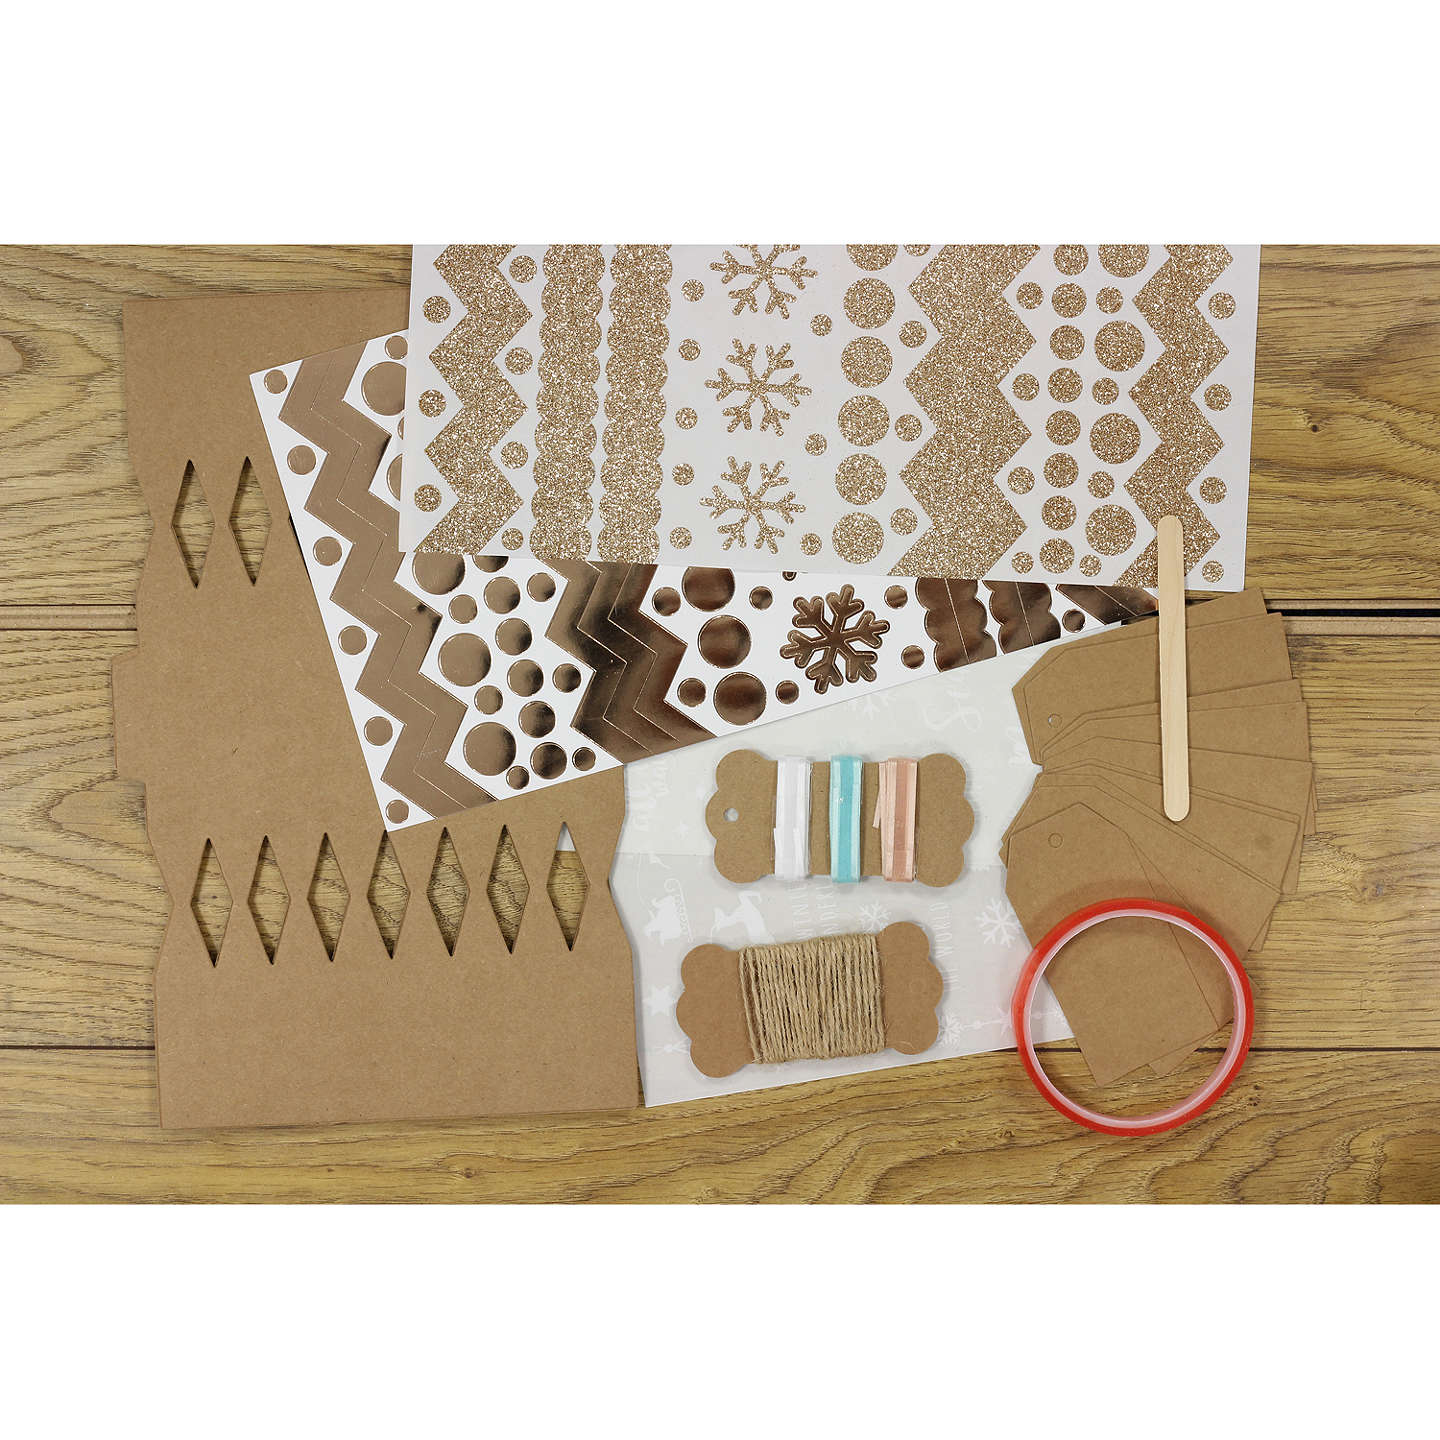 Crafters companion make your own crackers and tags kit at john lewis buycrafters companion make your own crackers and tags kit online at johnlewis solutioingenieria Gallery